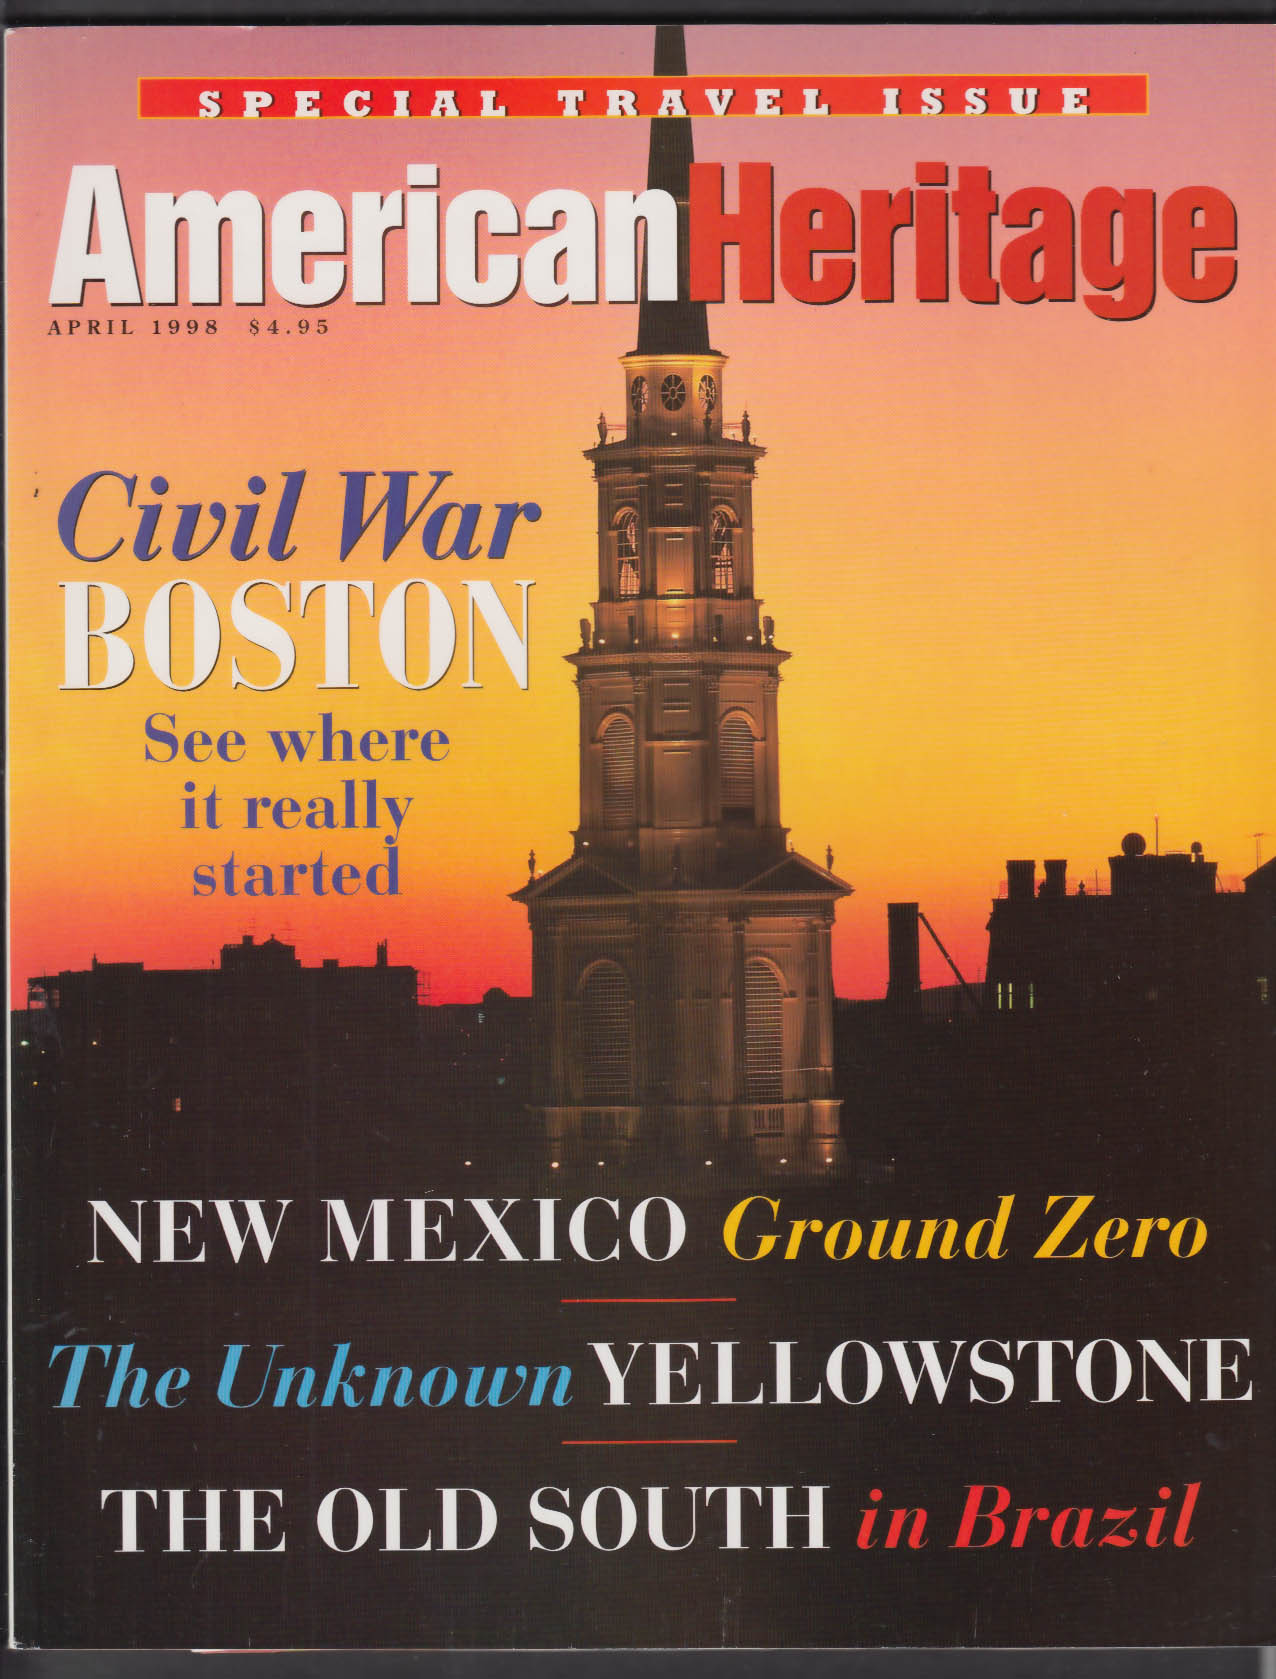 AMERICAN HERITAGE Civil War Boston New Mexico Yellowstone Brazil ++ 4 1998